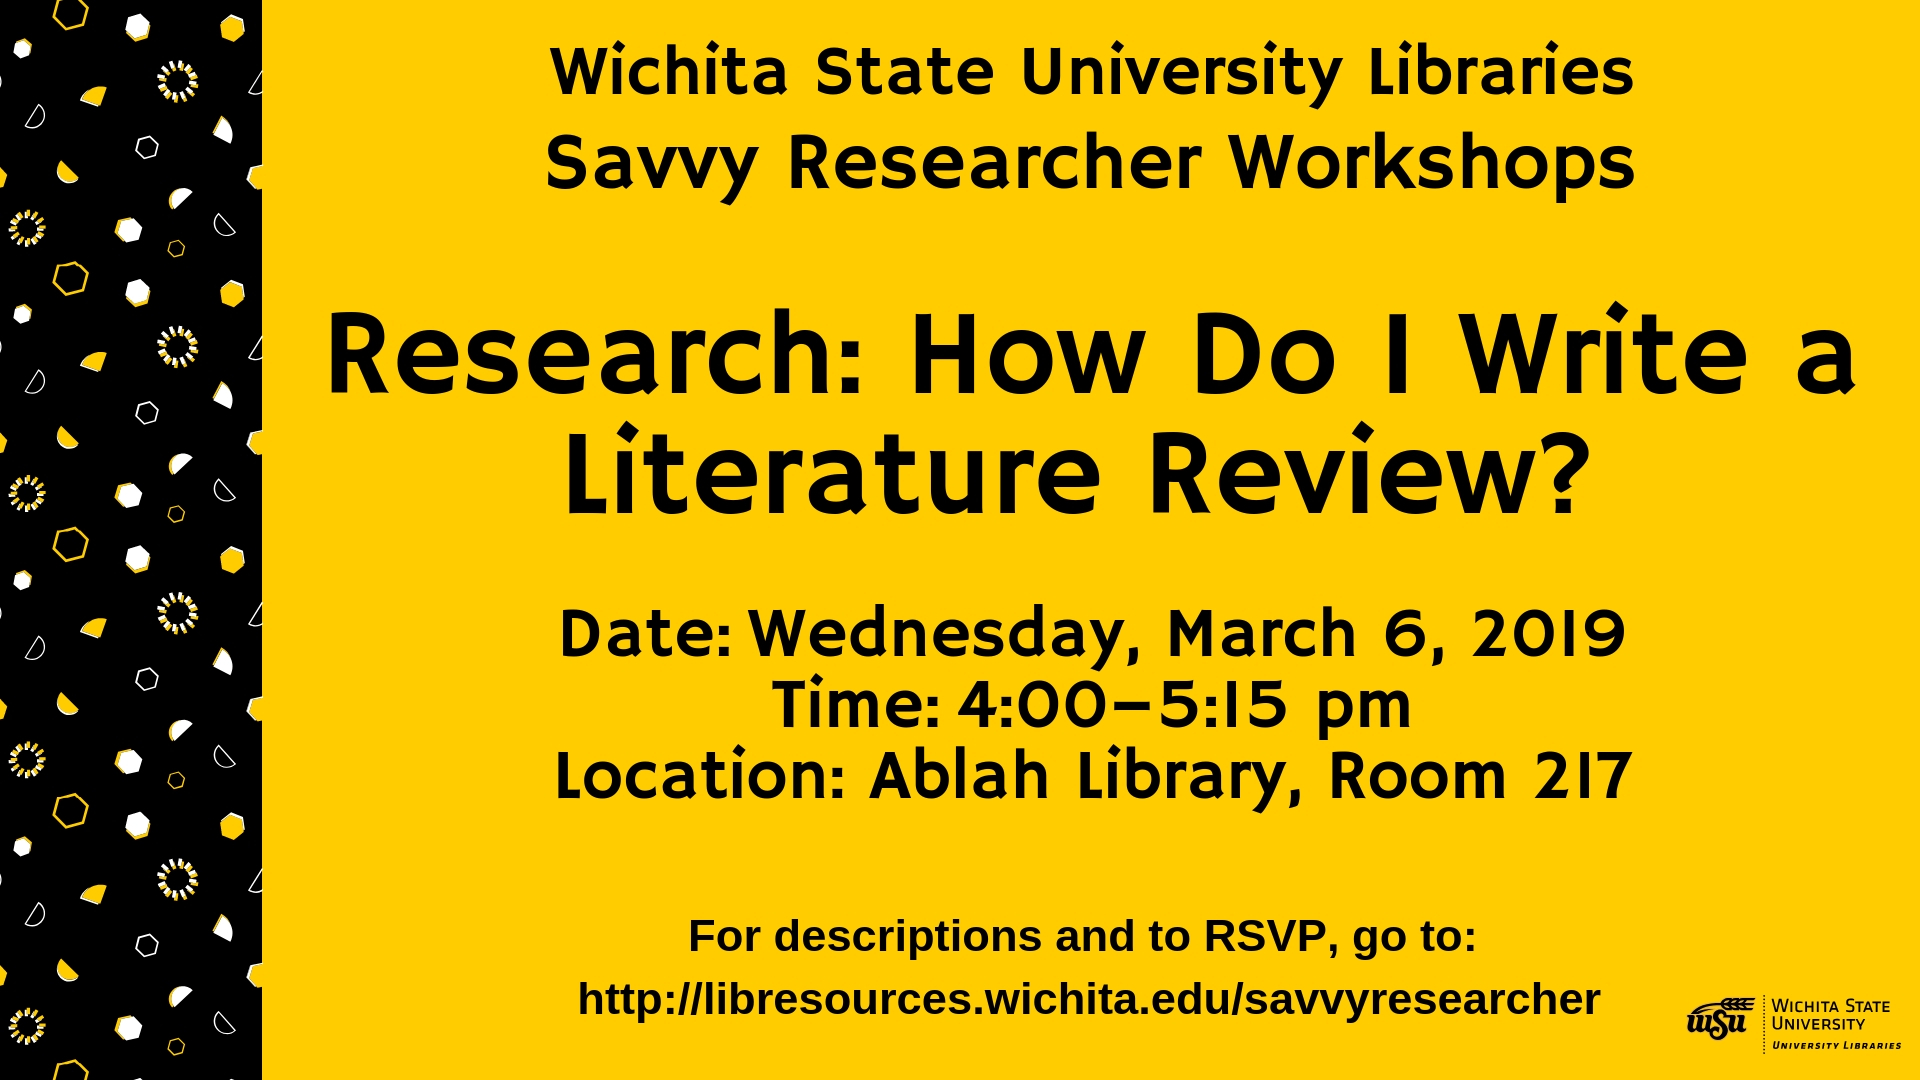 Research: How Do I Write a Literature Review?